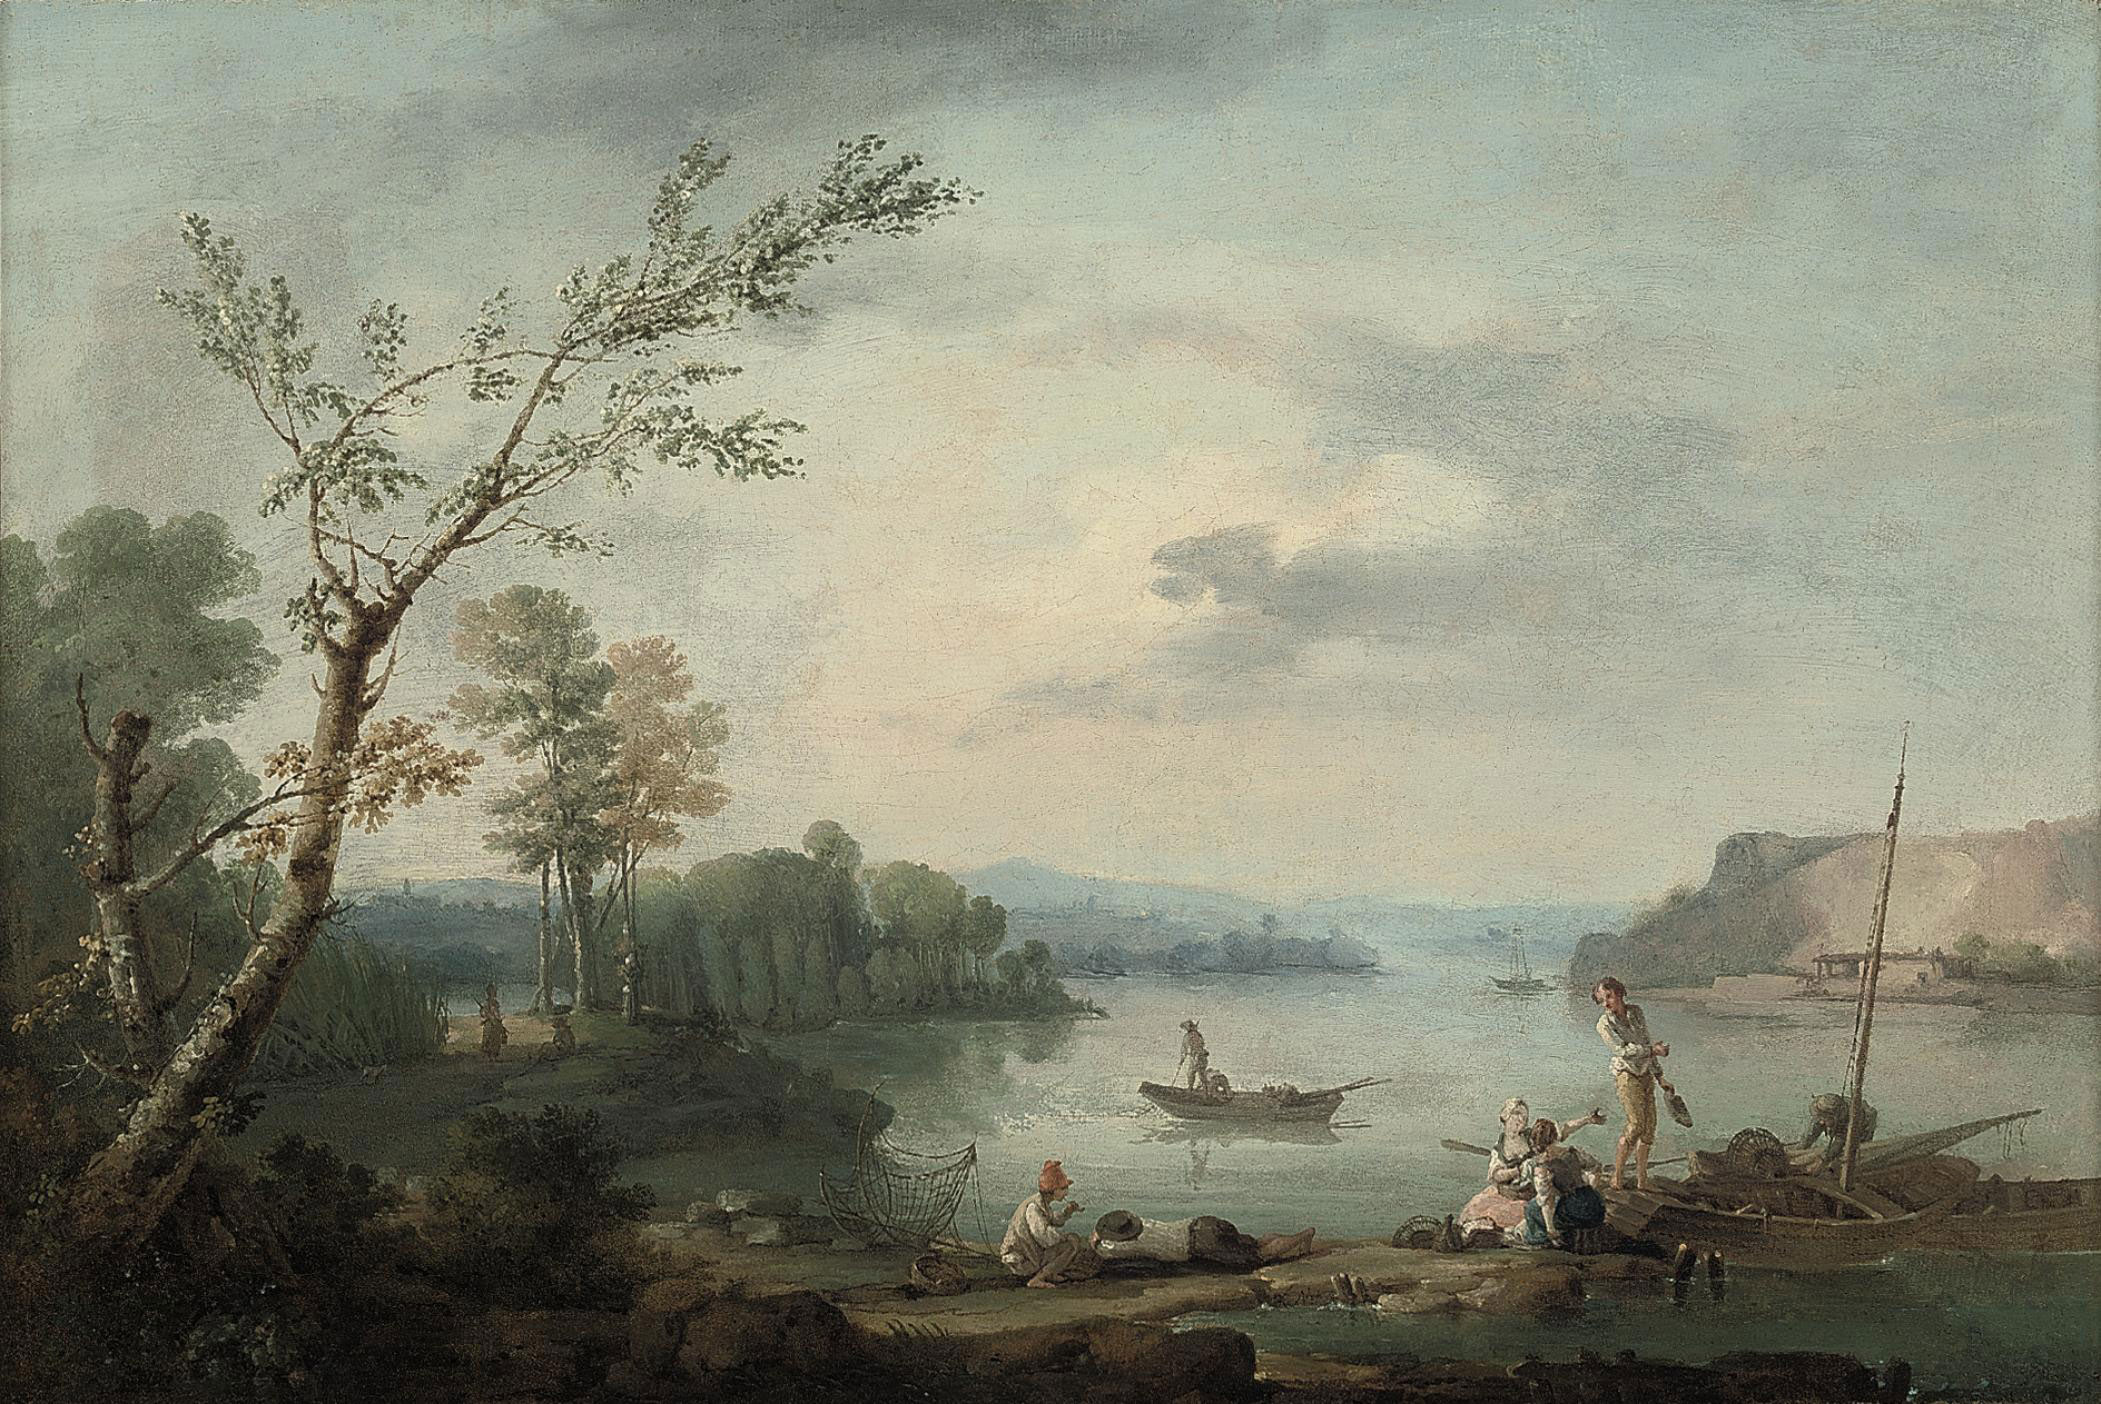 A wooded river landscape with fisherfolk